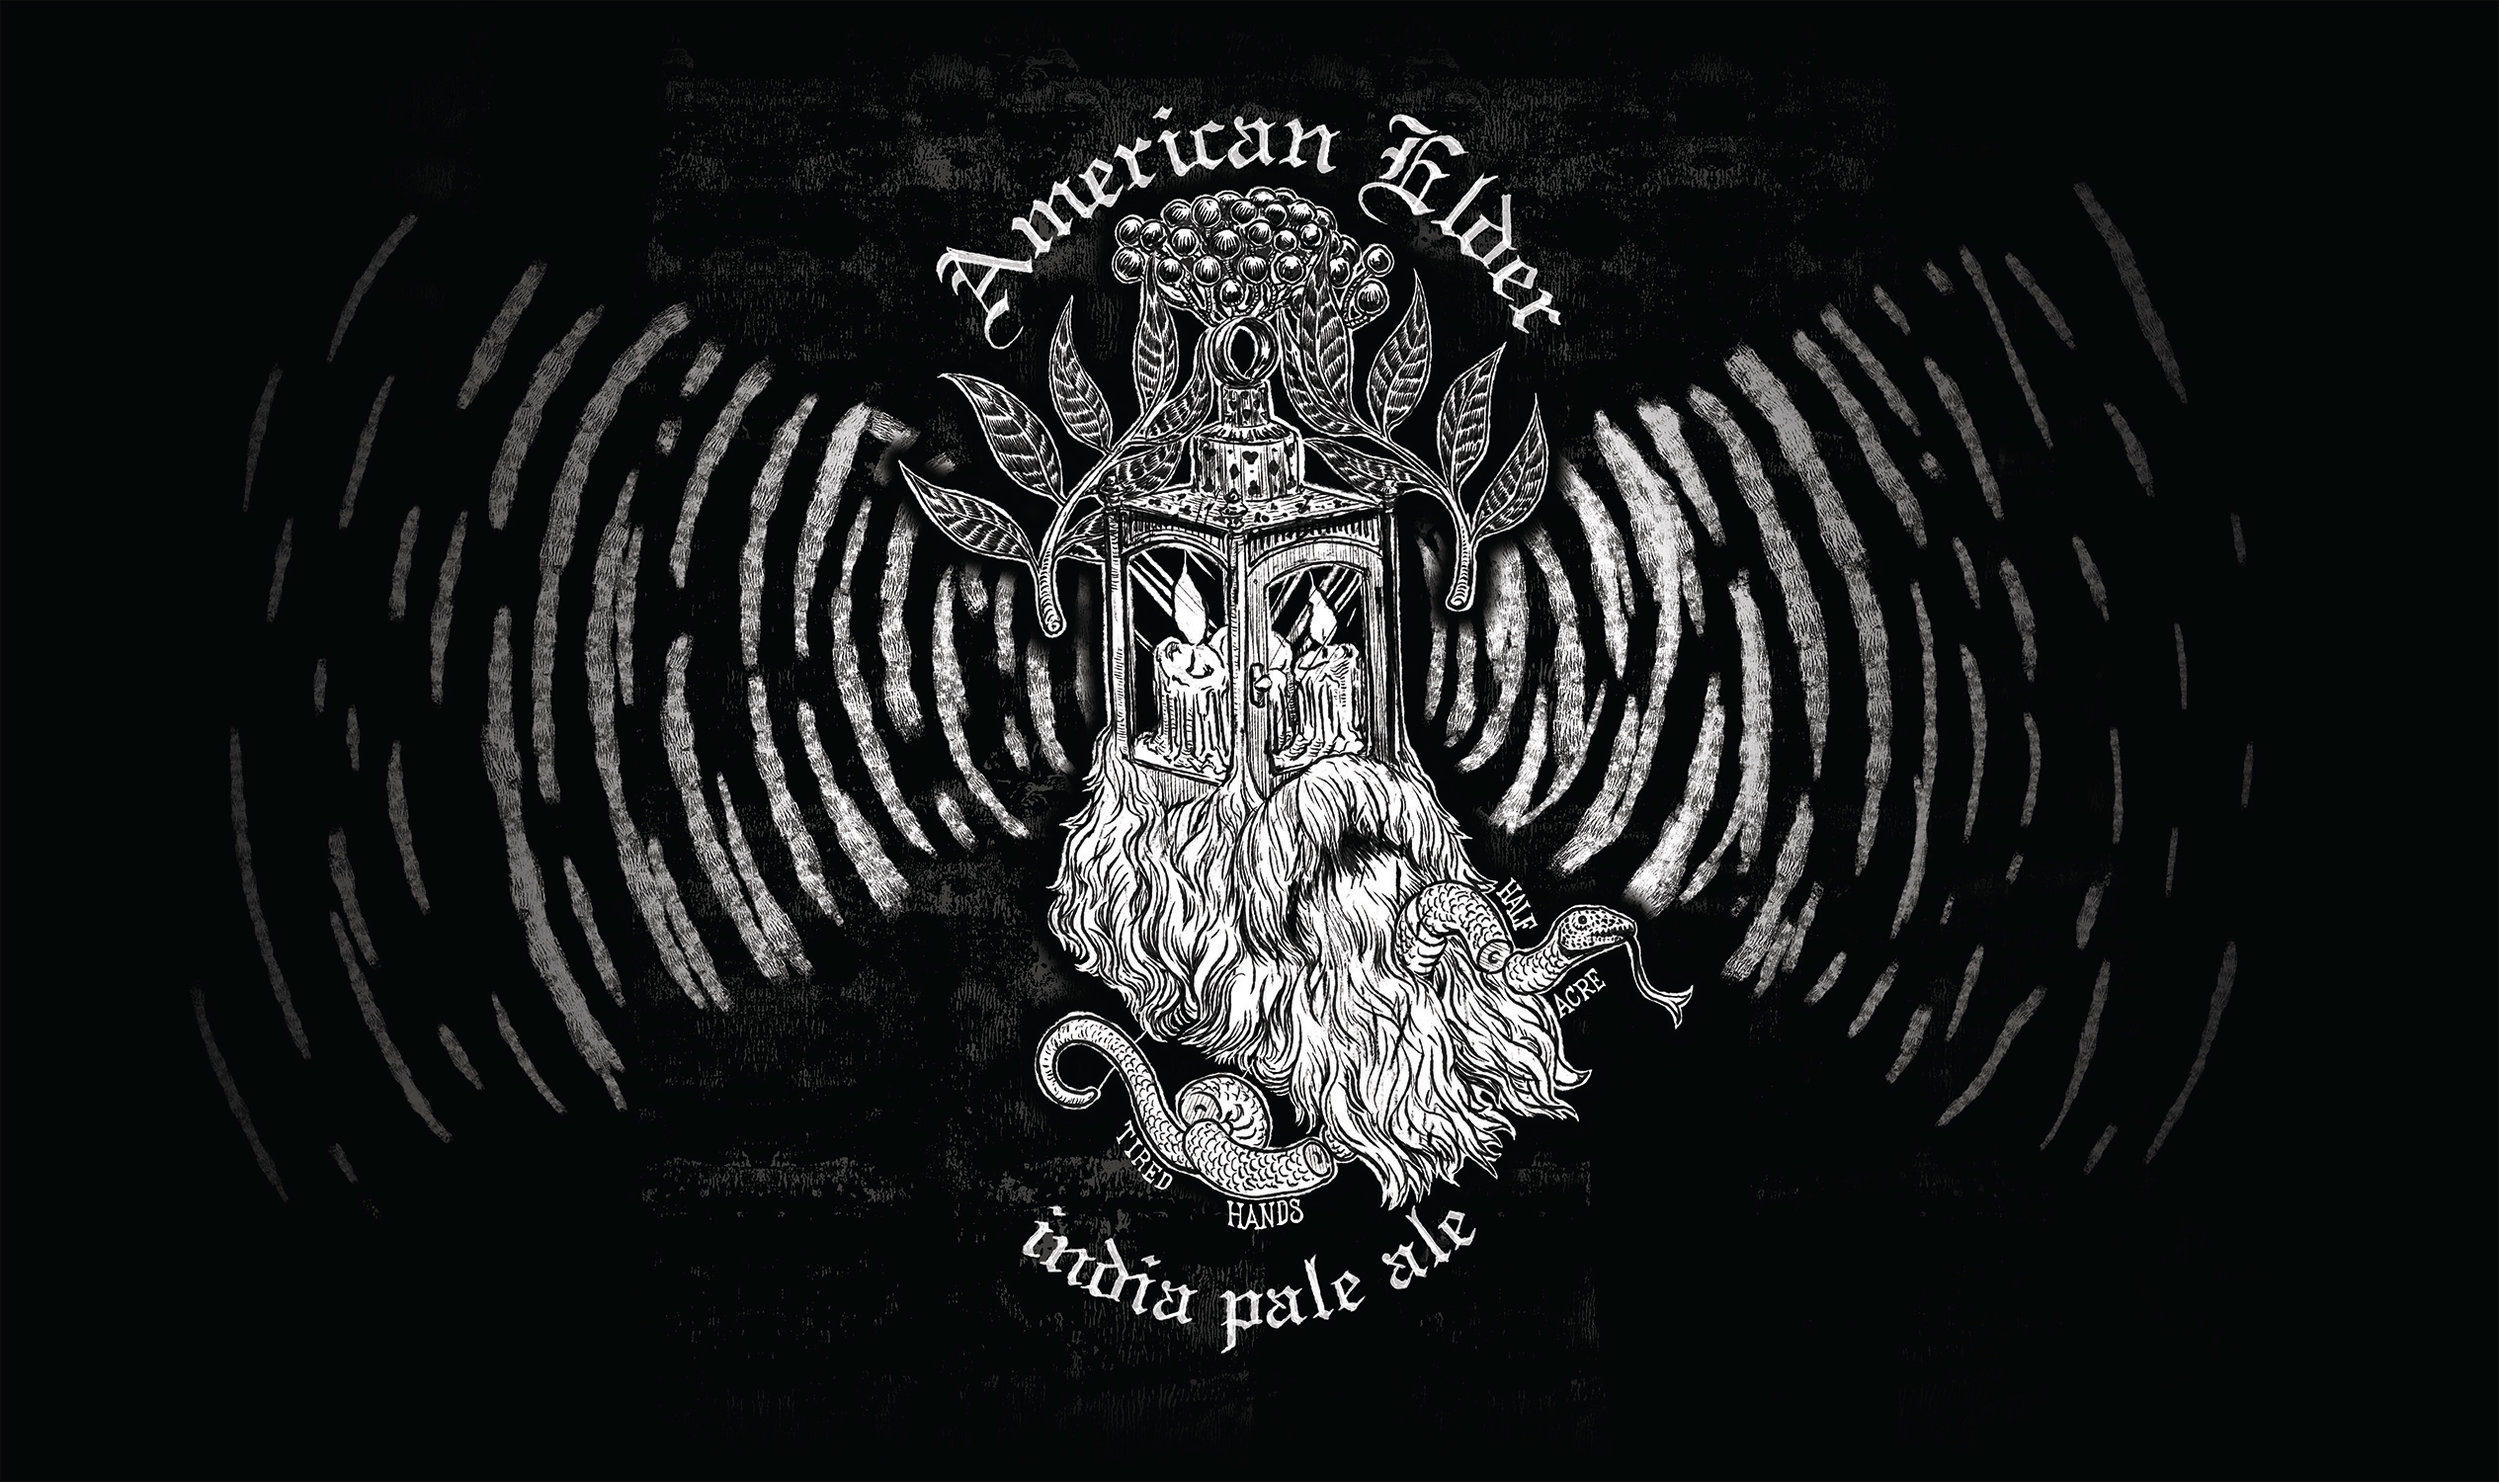 American Elder-label-v2.jpg